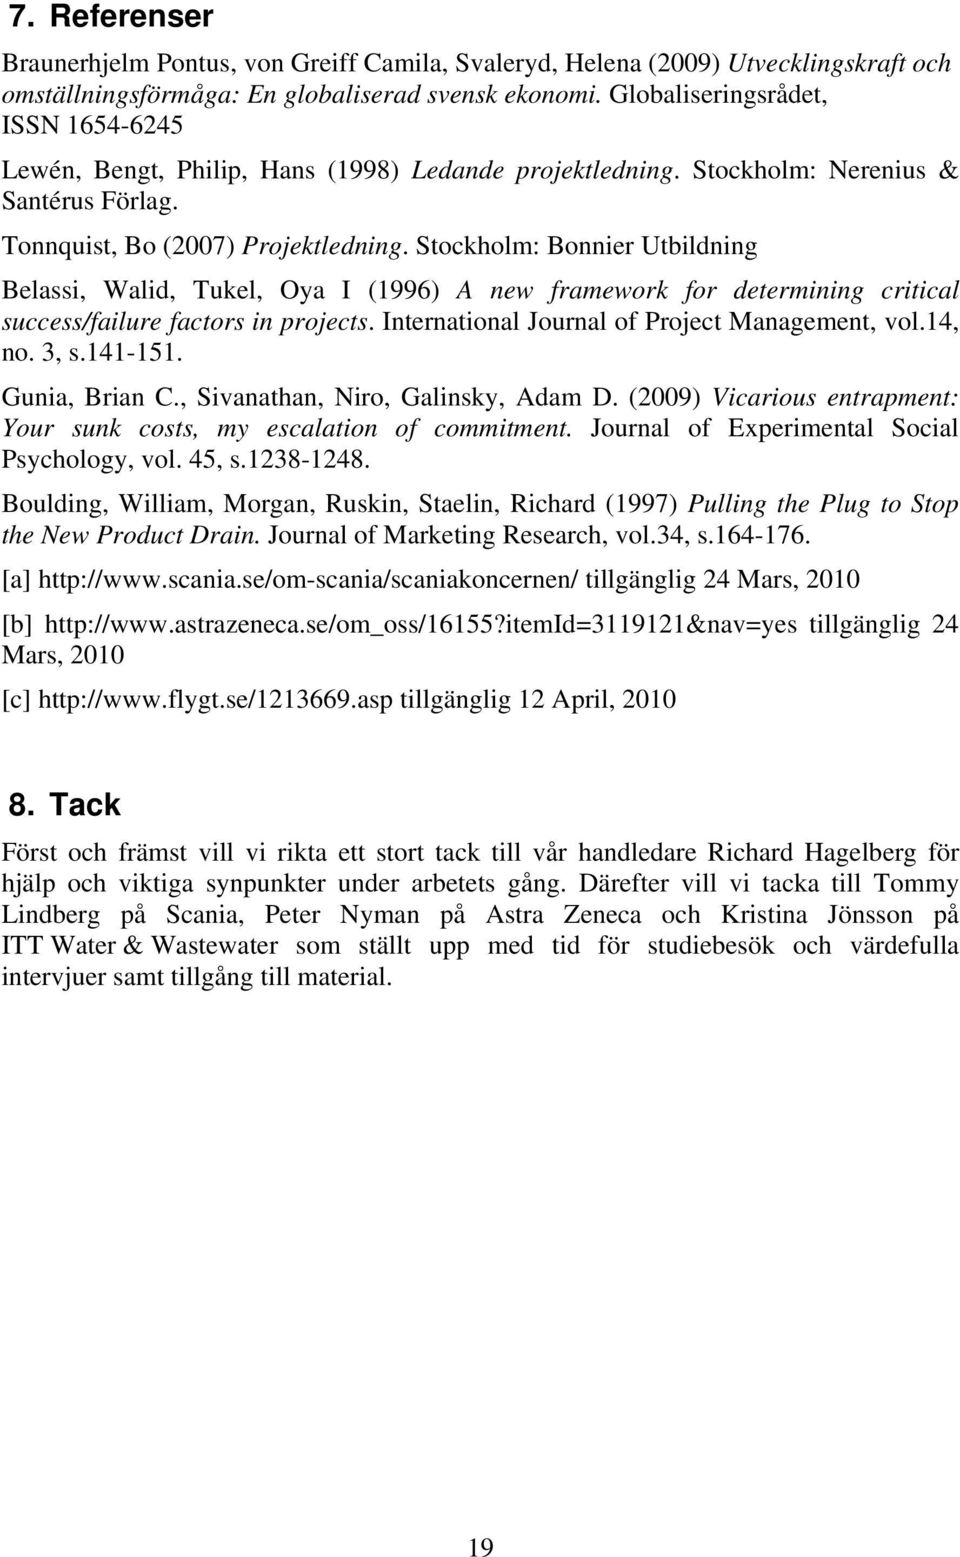 Stockholm: Bonnier Utbildning Belassi, Walid, Tukel, Oya I (1996) A new framework for determining critical success/failure factors in projects. International Journal of Project Management, vol.14, no.